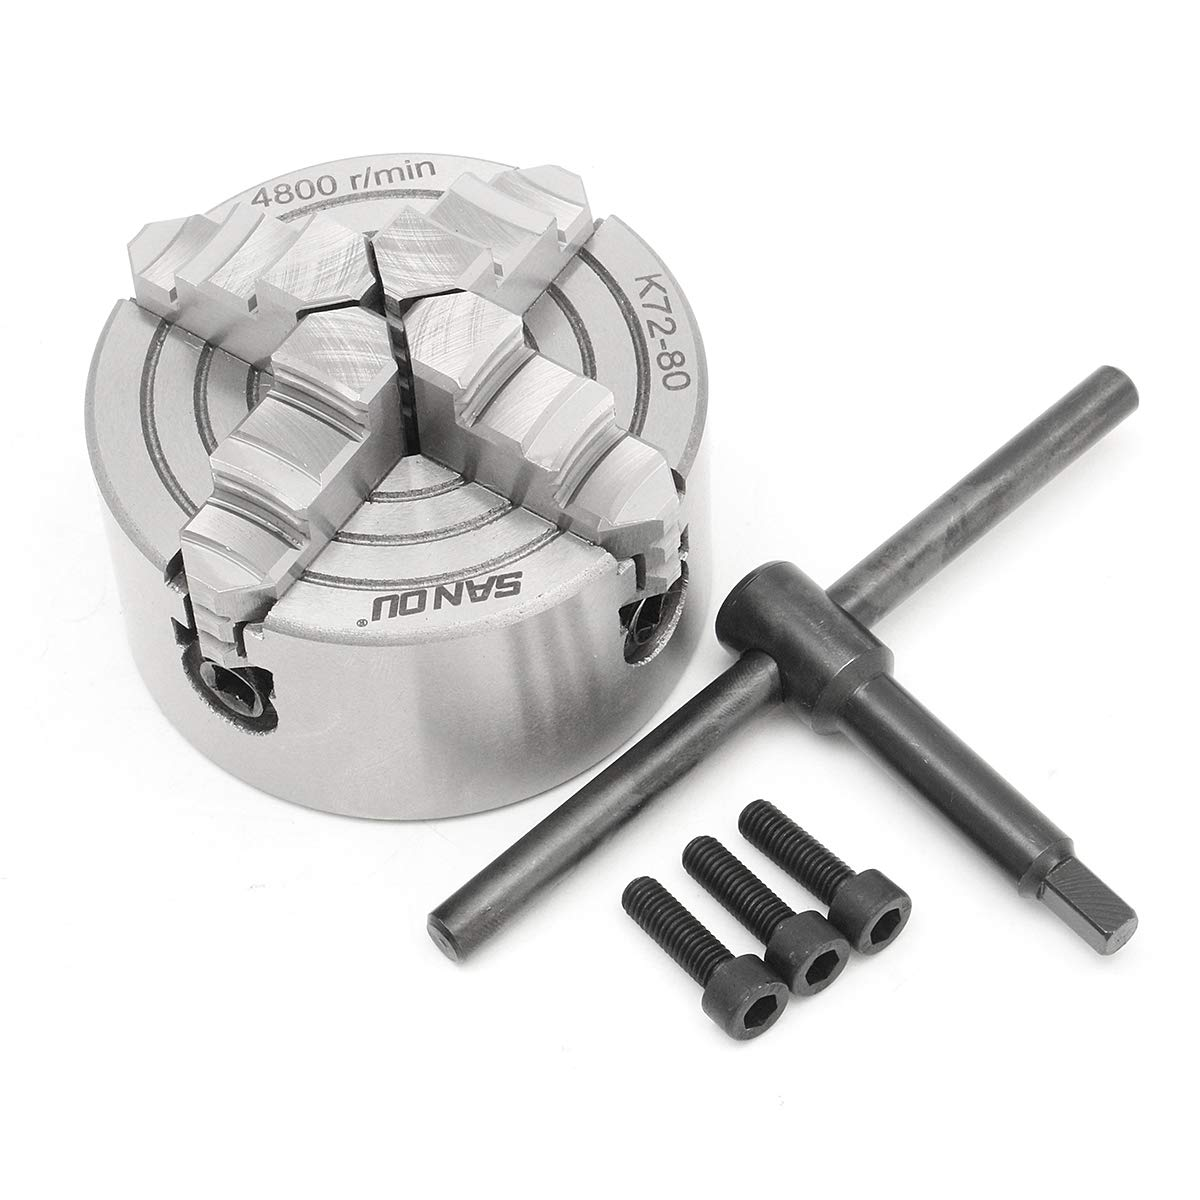 CoCocina SANOU K72 Lathe Chuck 80/100/125mm 4 Jaw Independent Hardened Reversible Tool - 80mm by CoCocina